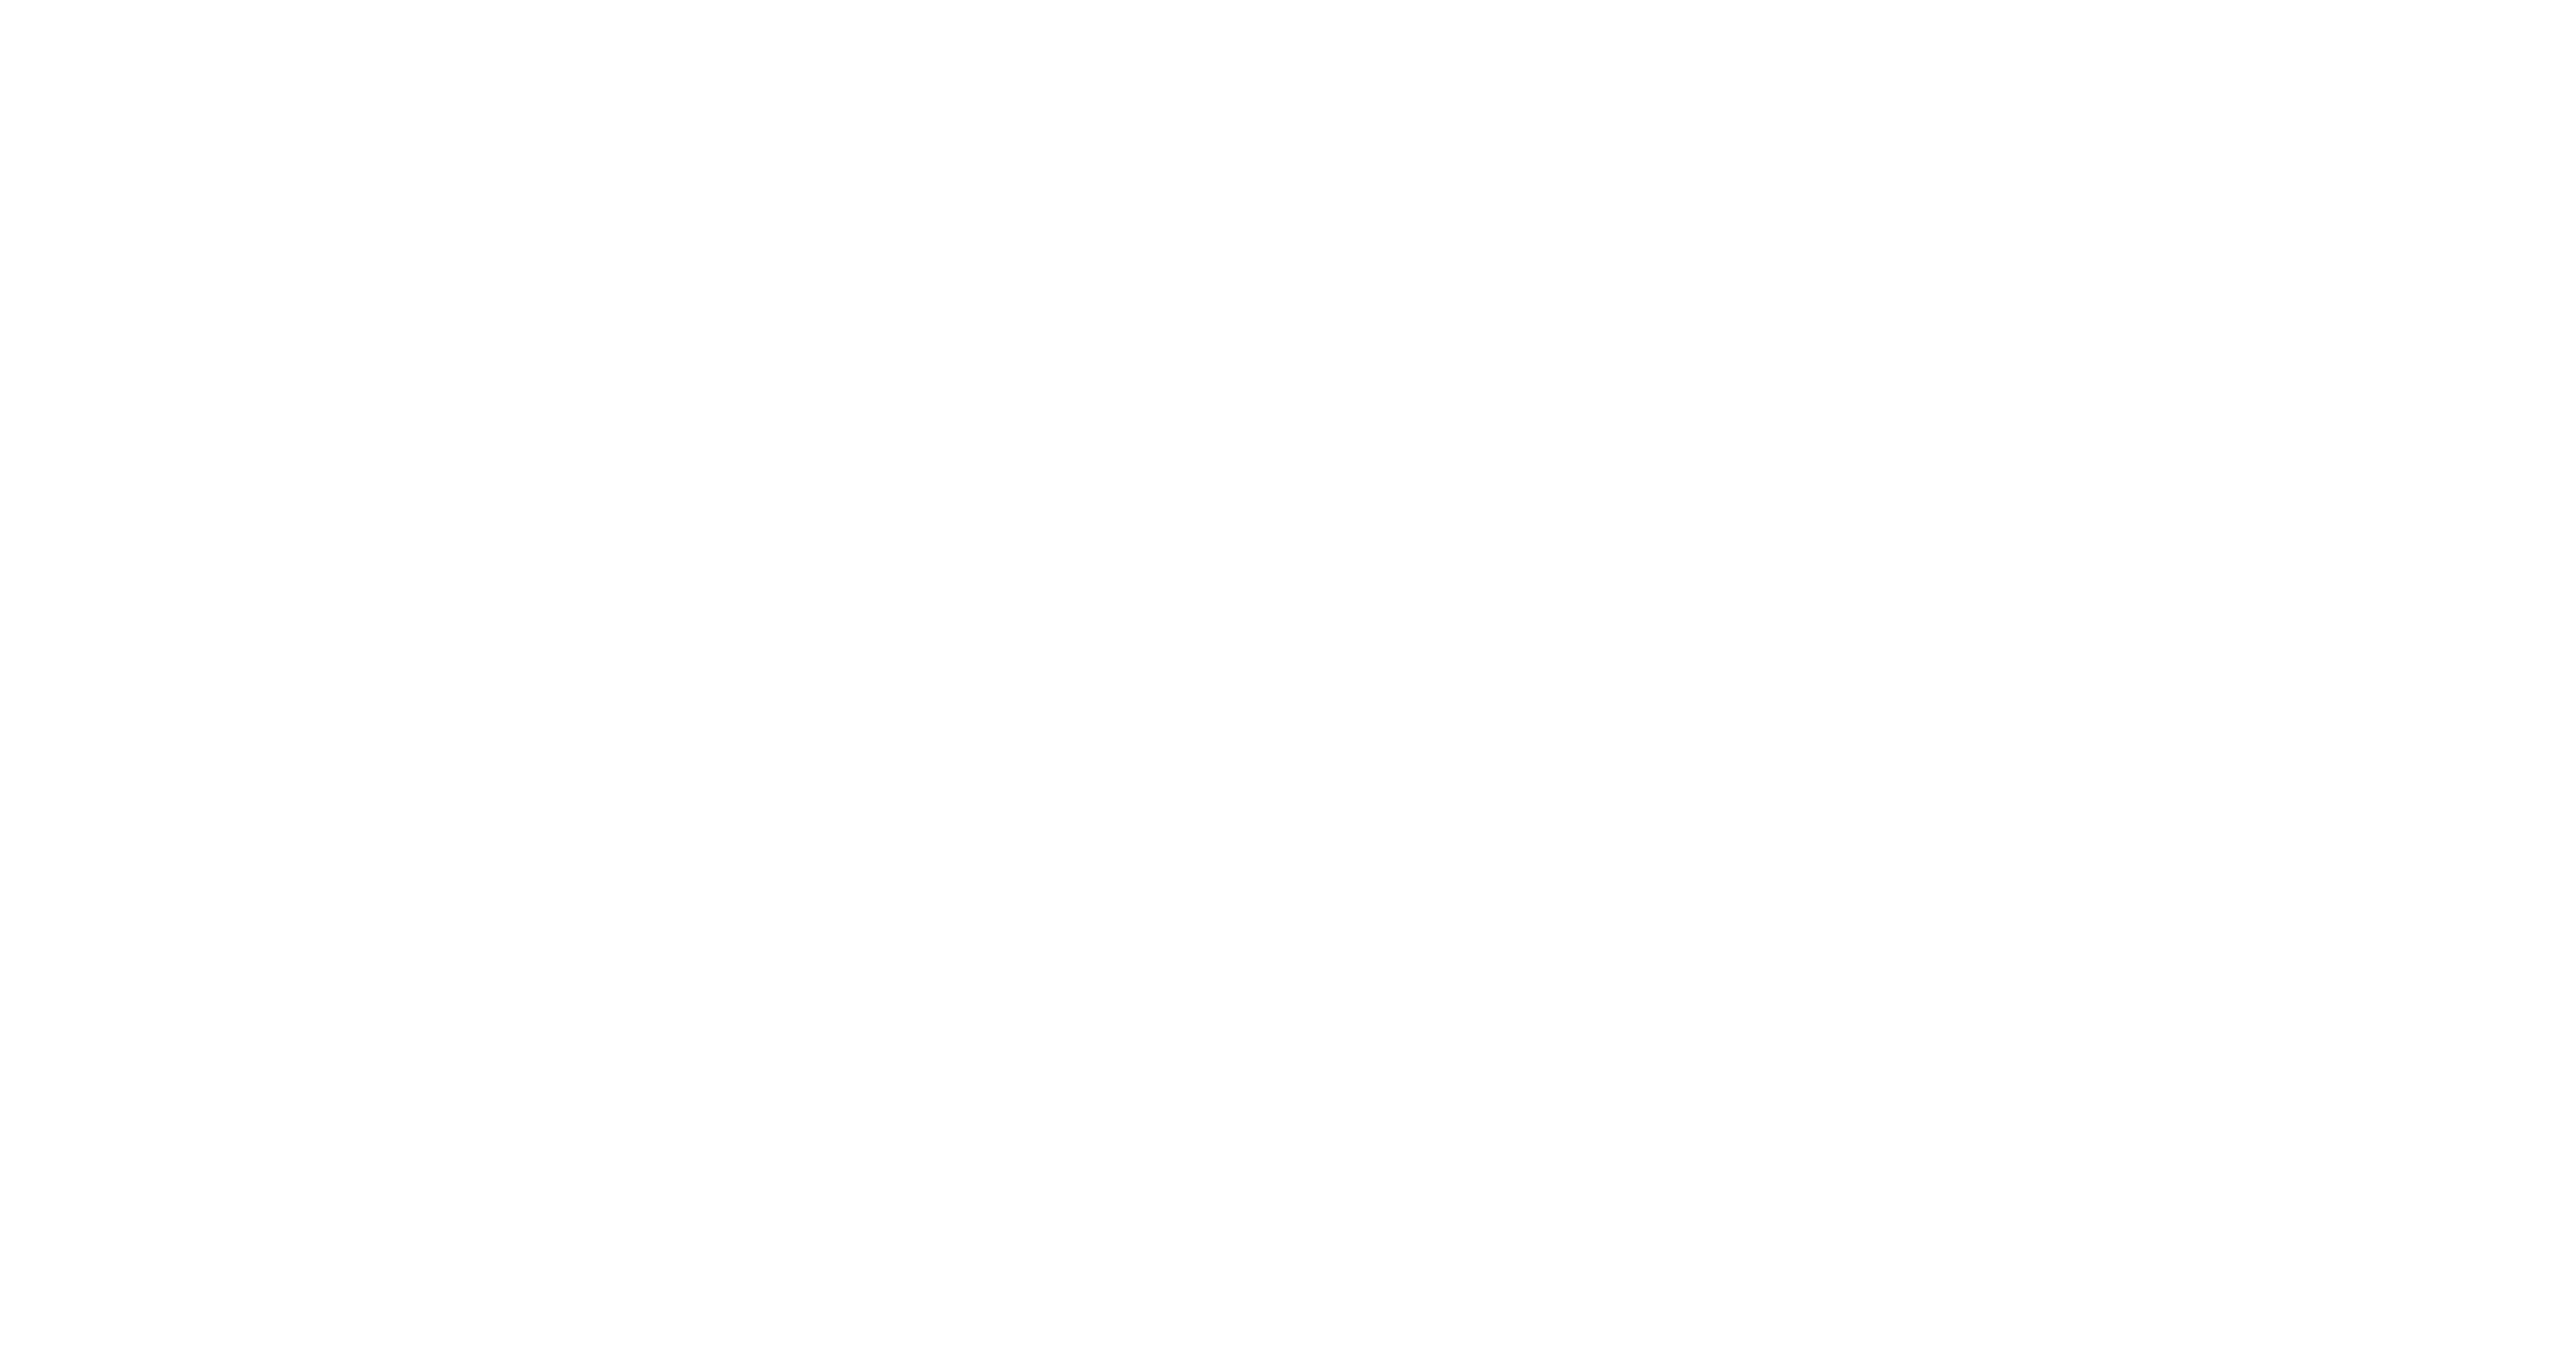 [Text Image] Workforce development program start your career today